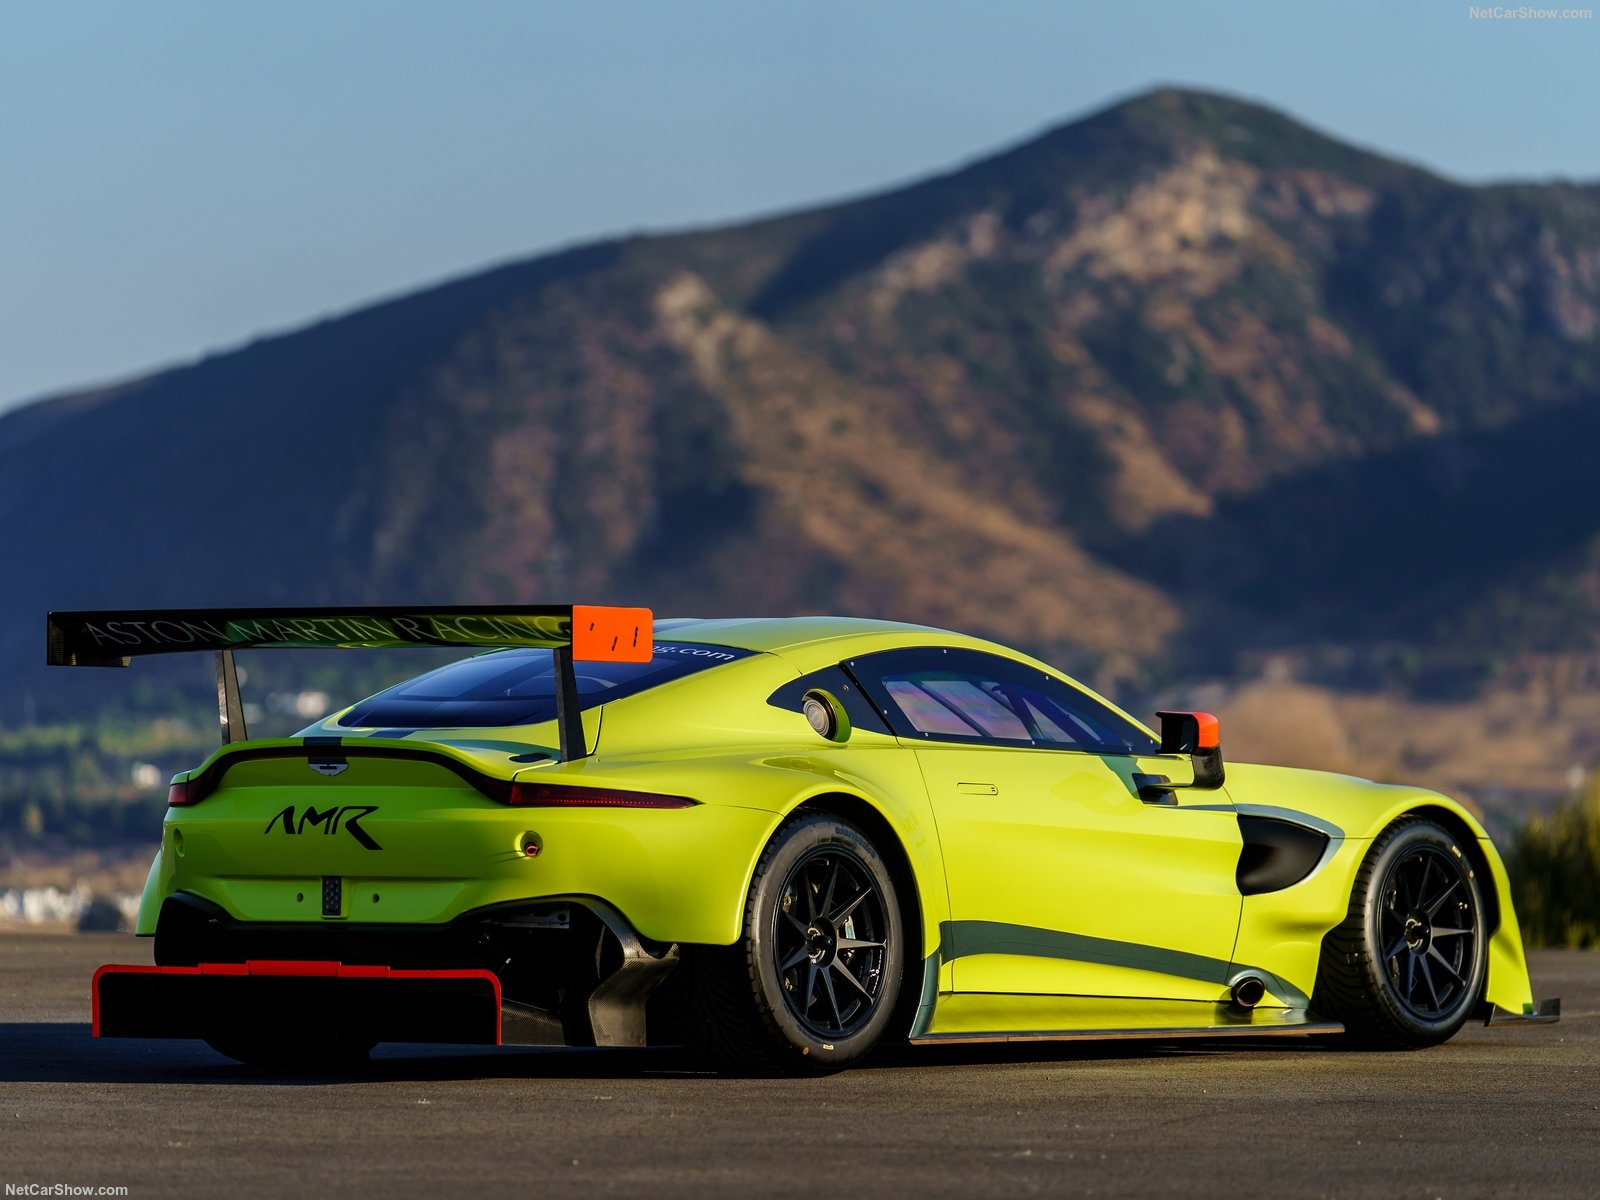 Aston Martin Vantage GTE Racecar photo 183882